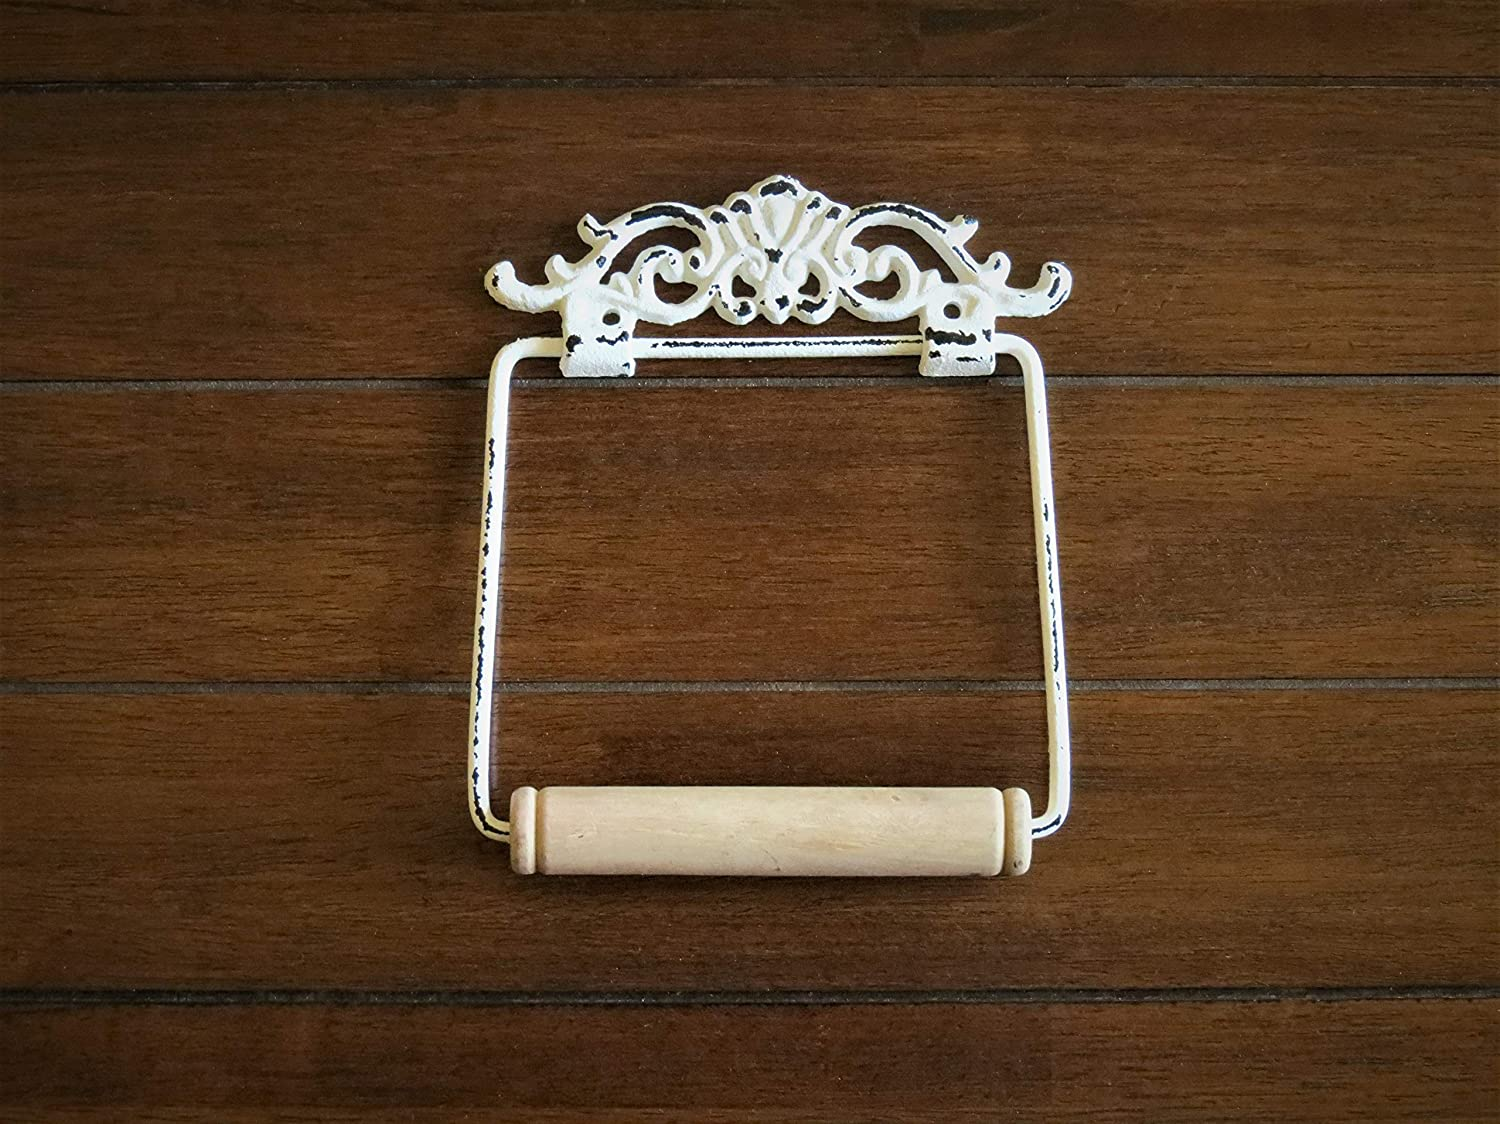 Toilet Paper Holder Antique White or Pick Color Shabby Chic Bathroom Accessories Hand Towel Hanger Scrolled